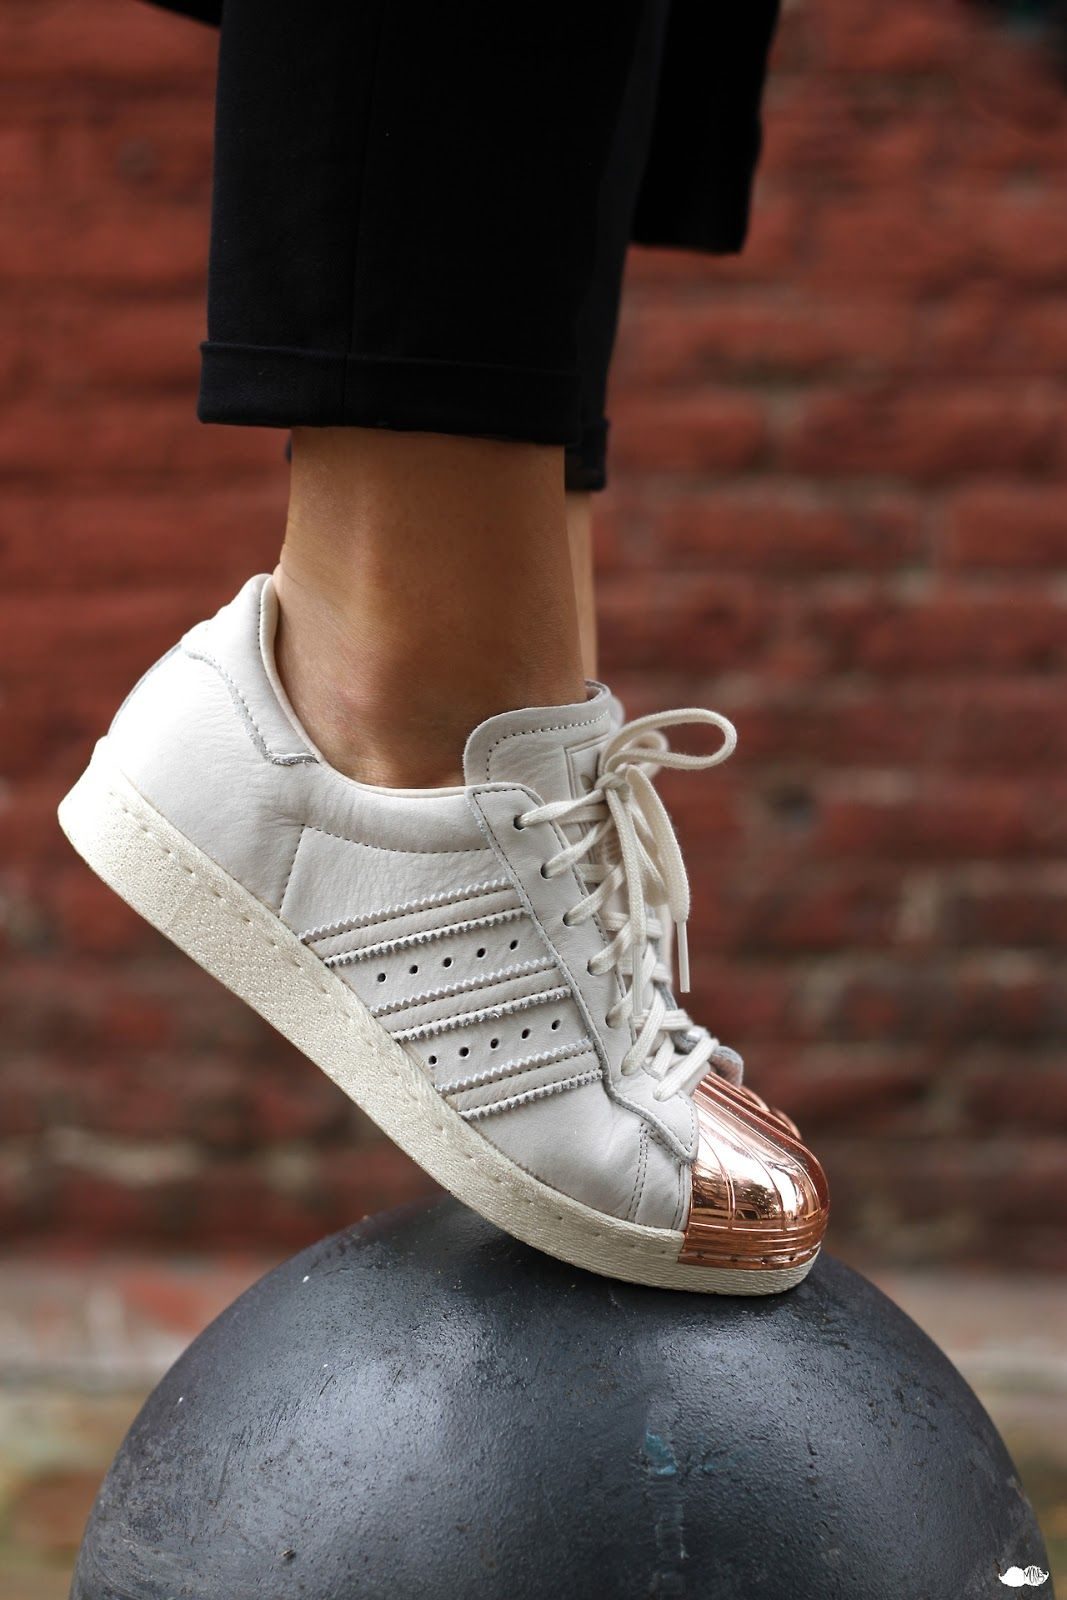 Adidas Superstar Black White Gold Review